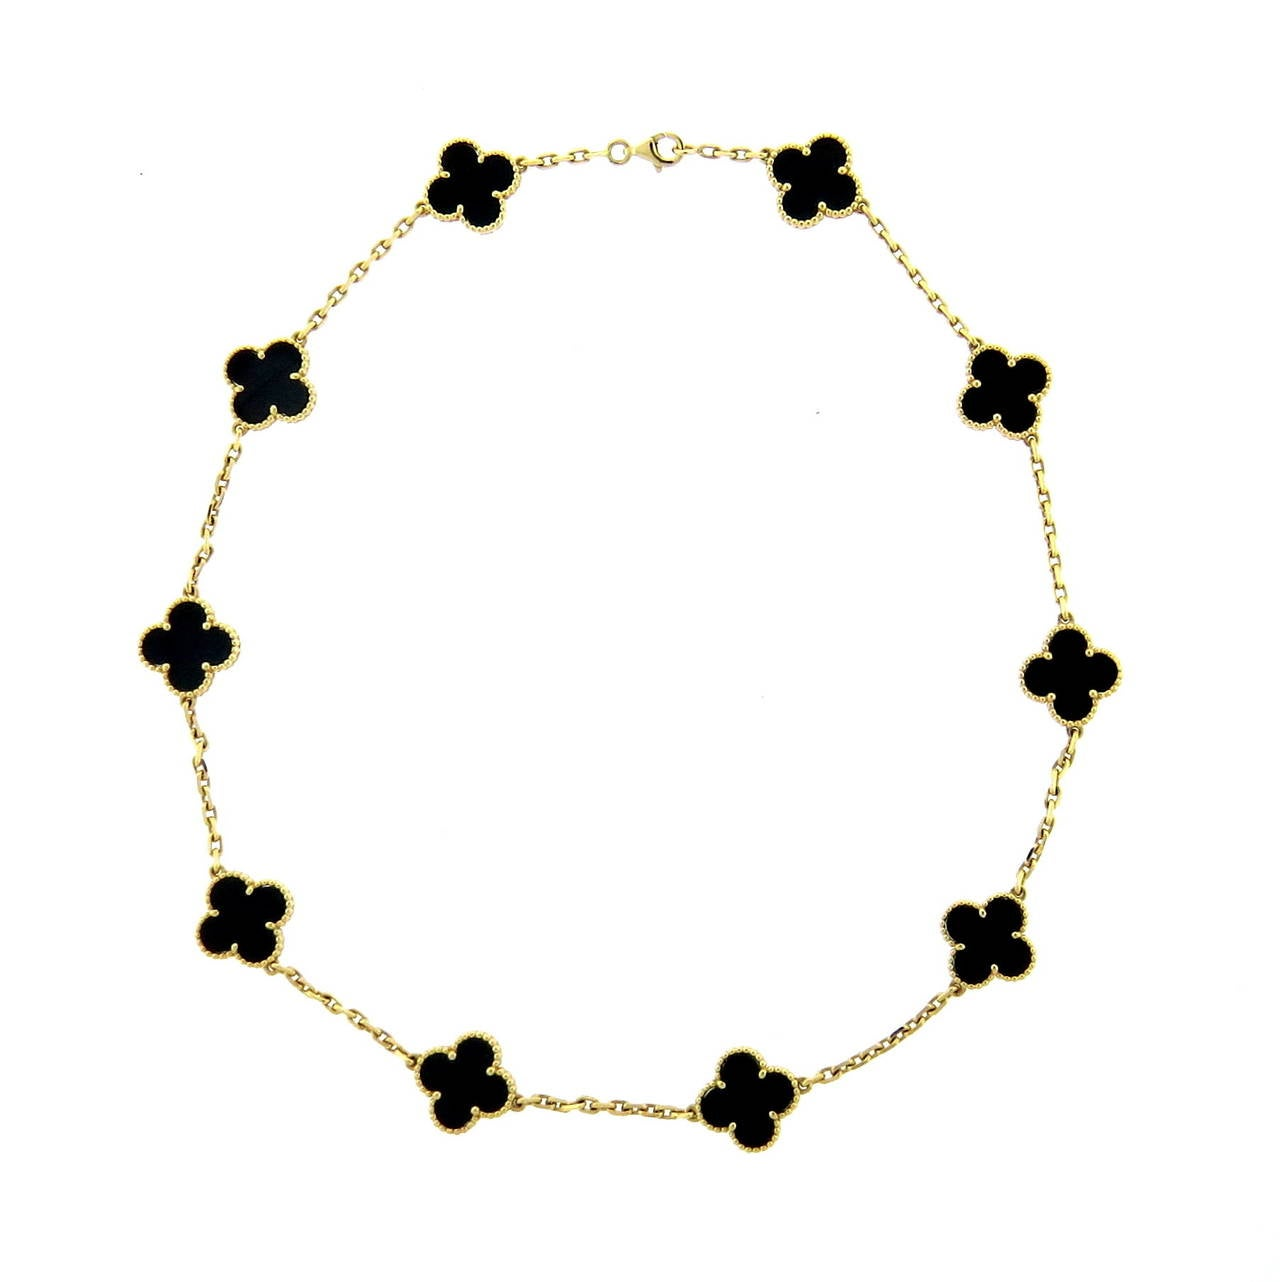 An 18k yellow gold necklace set with onyx clovers 15mm x 15mm.  Crafted by Van Cleef & Arpels for the Vintage Alhambra collection, the necklace measures 16.5